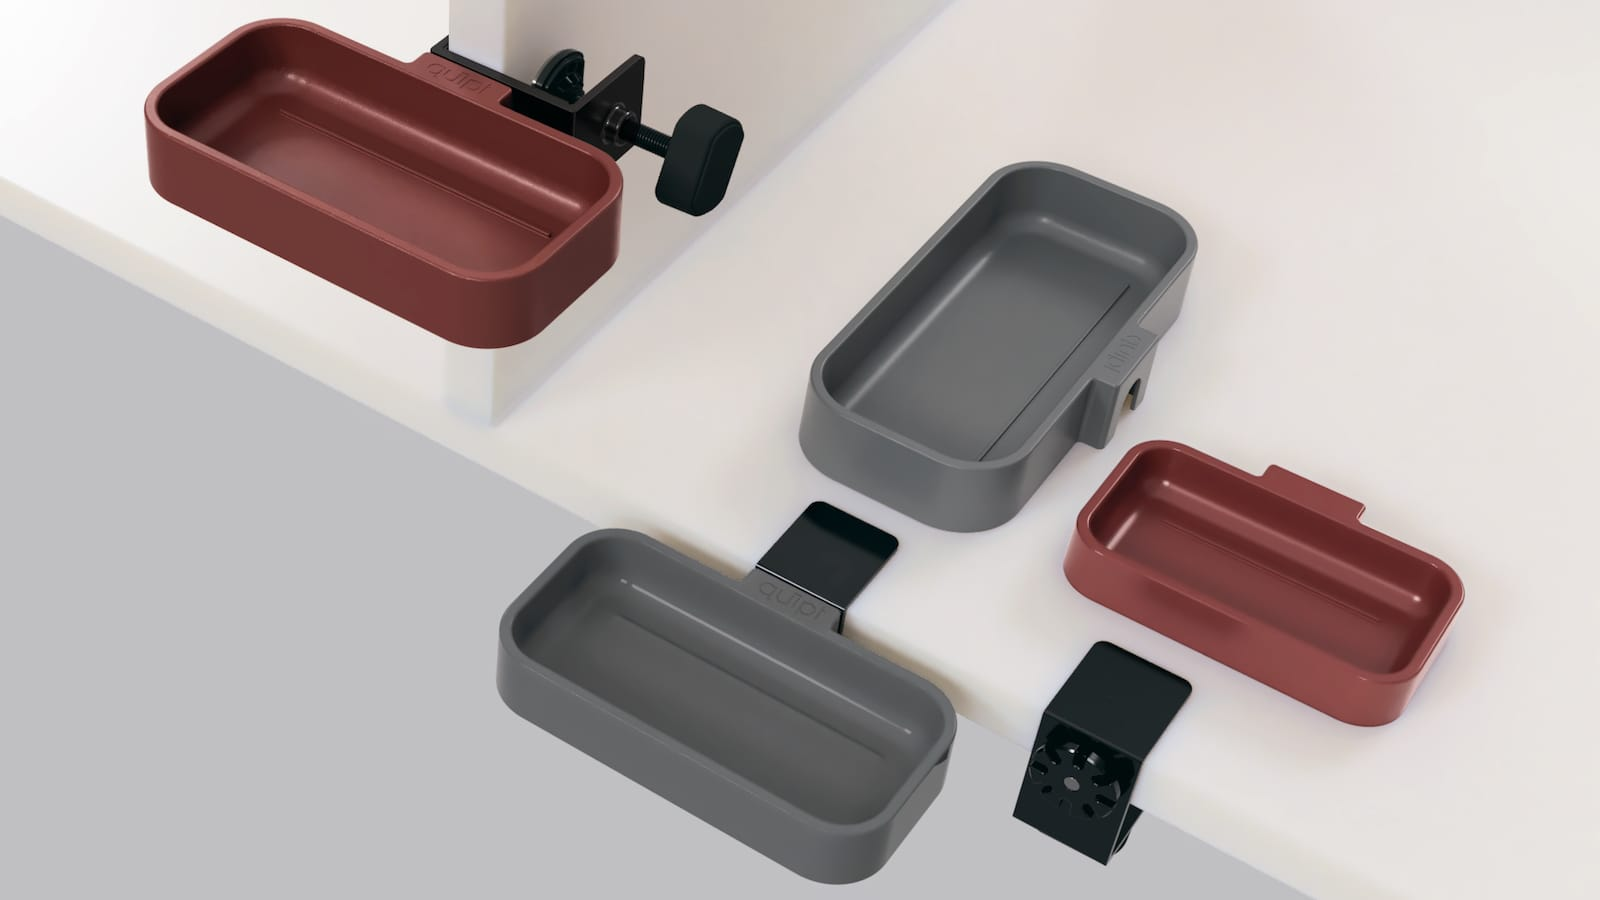 quipt Tray & Clamp quick-connecting utility tray is designed for the modern maker